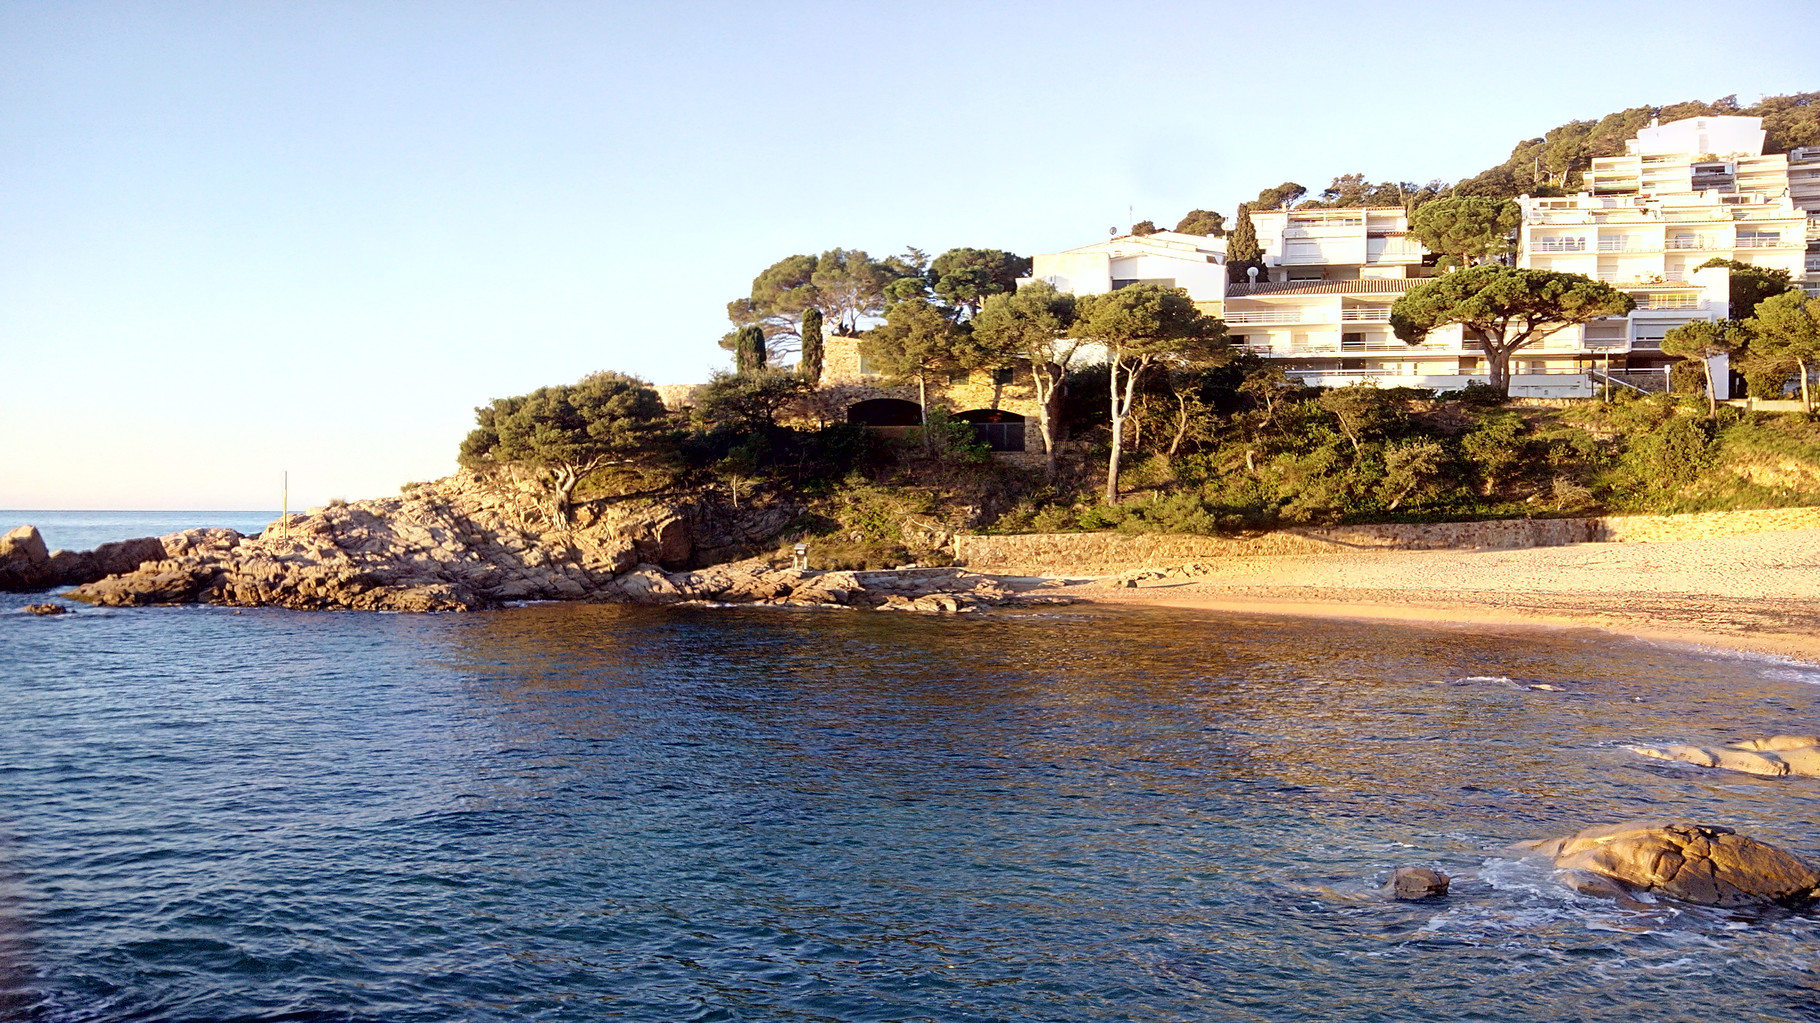 Cala Salionç beach, for the exclusive use of residents